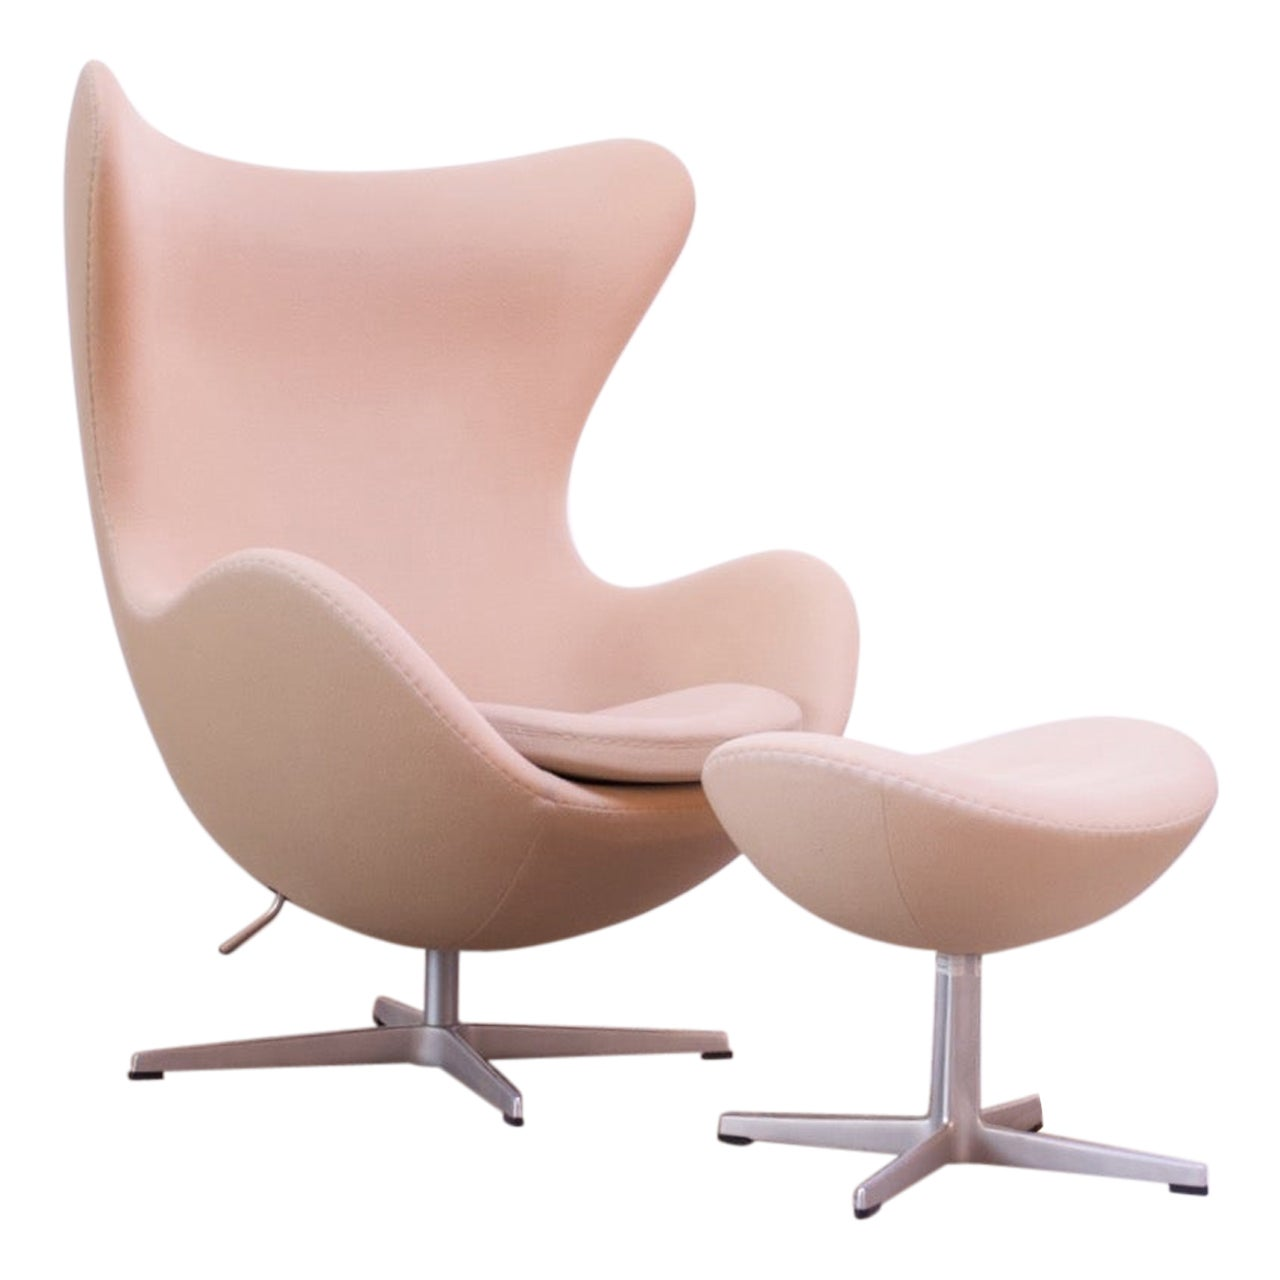 Arne Jacobsen for Fritz Hansen Egg Chair and Ottoman Distributed by Knoll